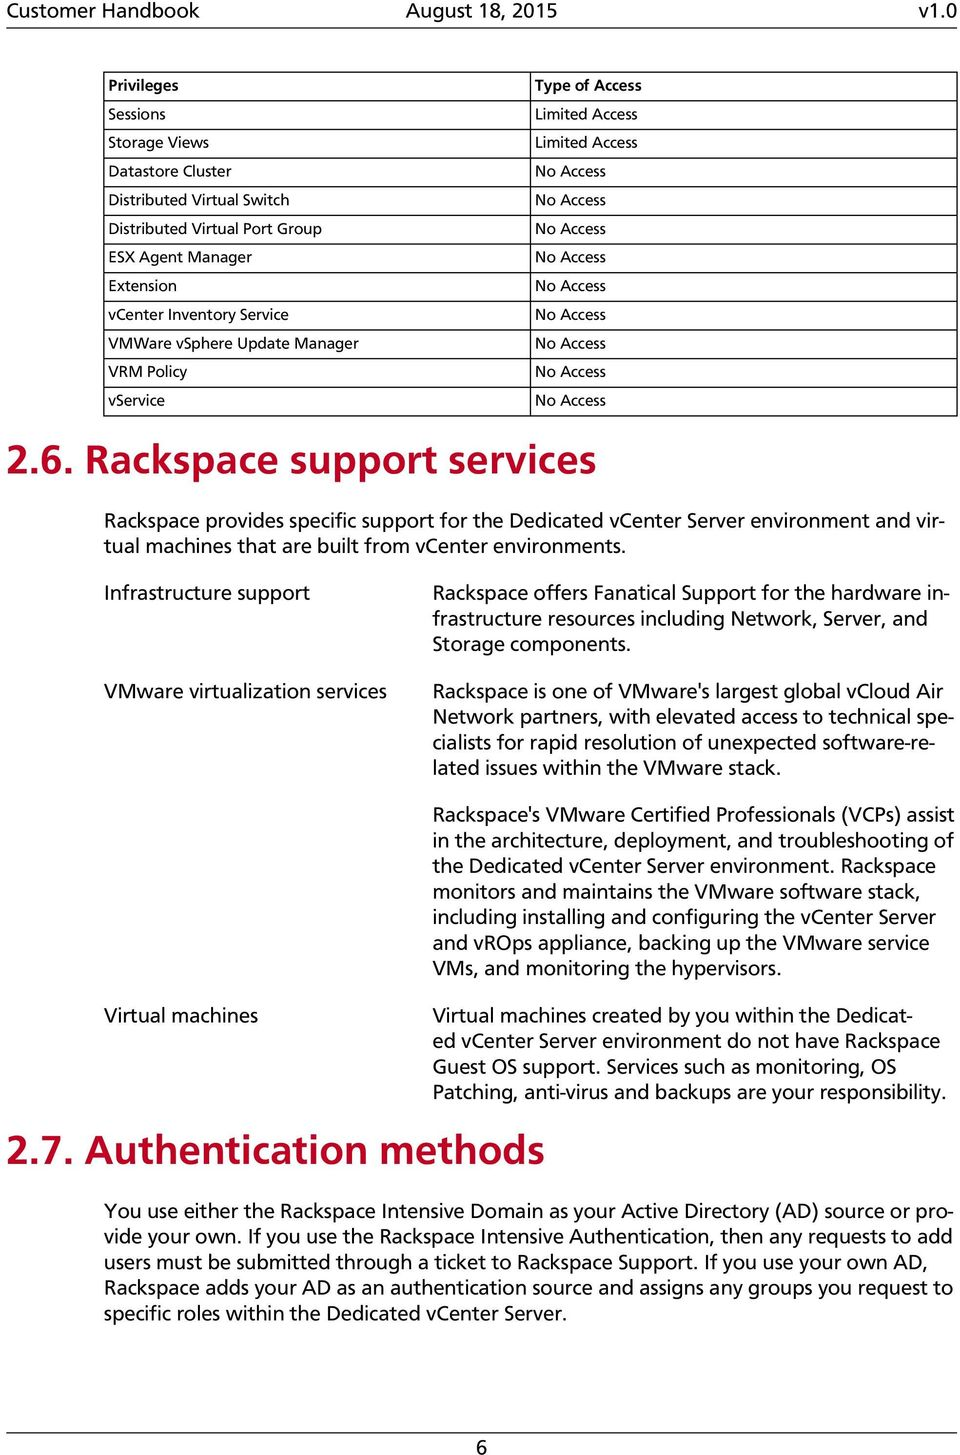 Rackspace support services Rackspace provides specific support for the Dedicated vcenter Server environment and virtual machines that are built from vcenter environments.